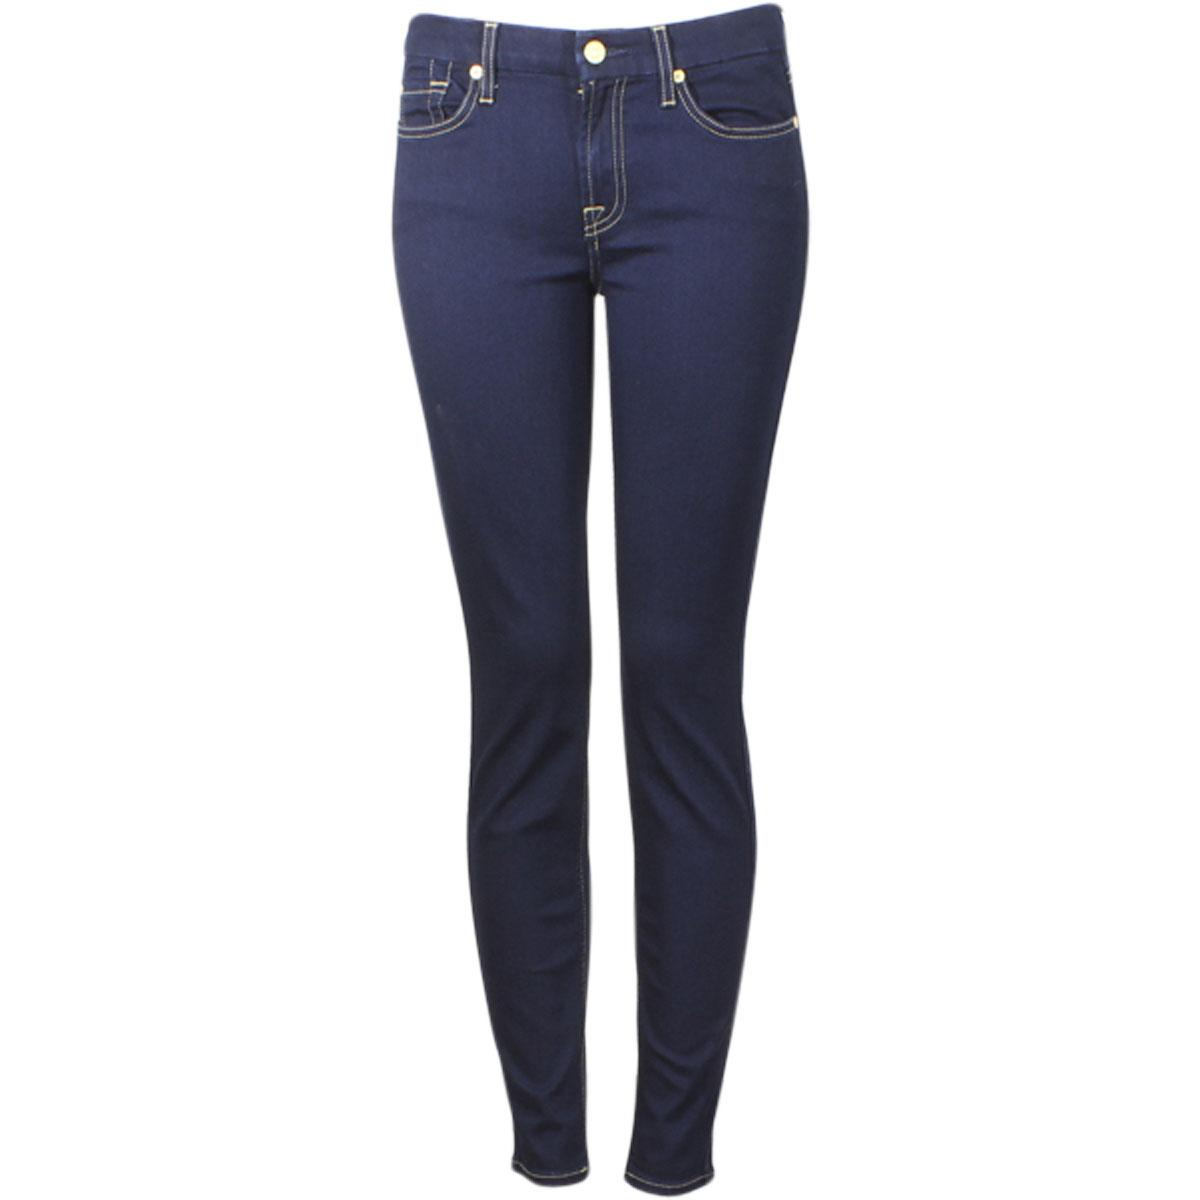 Image of 7 For All Mankind Women's (B)Air Denim The Skinny Jeans - Blue - 25 (0)